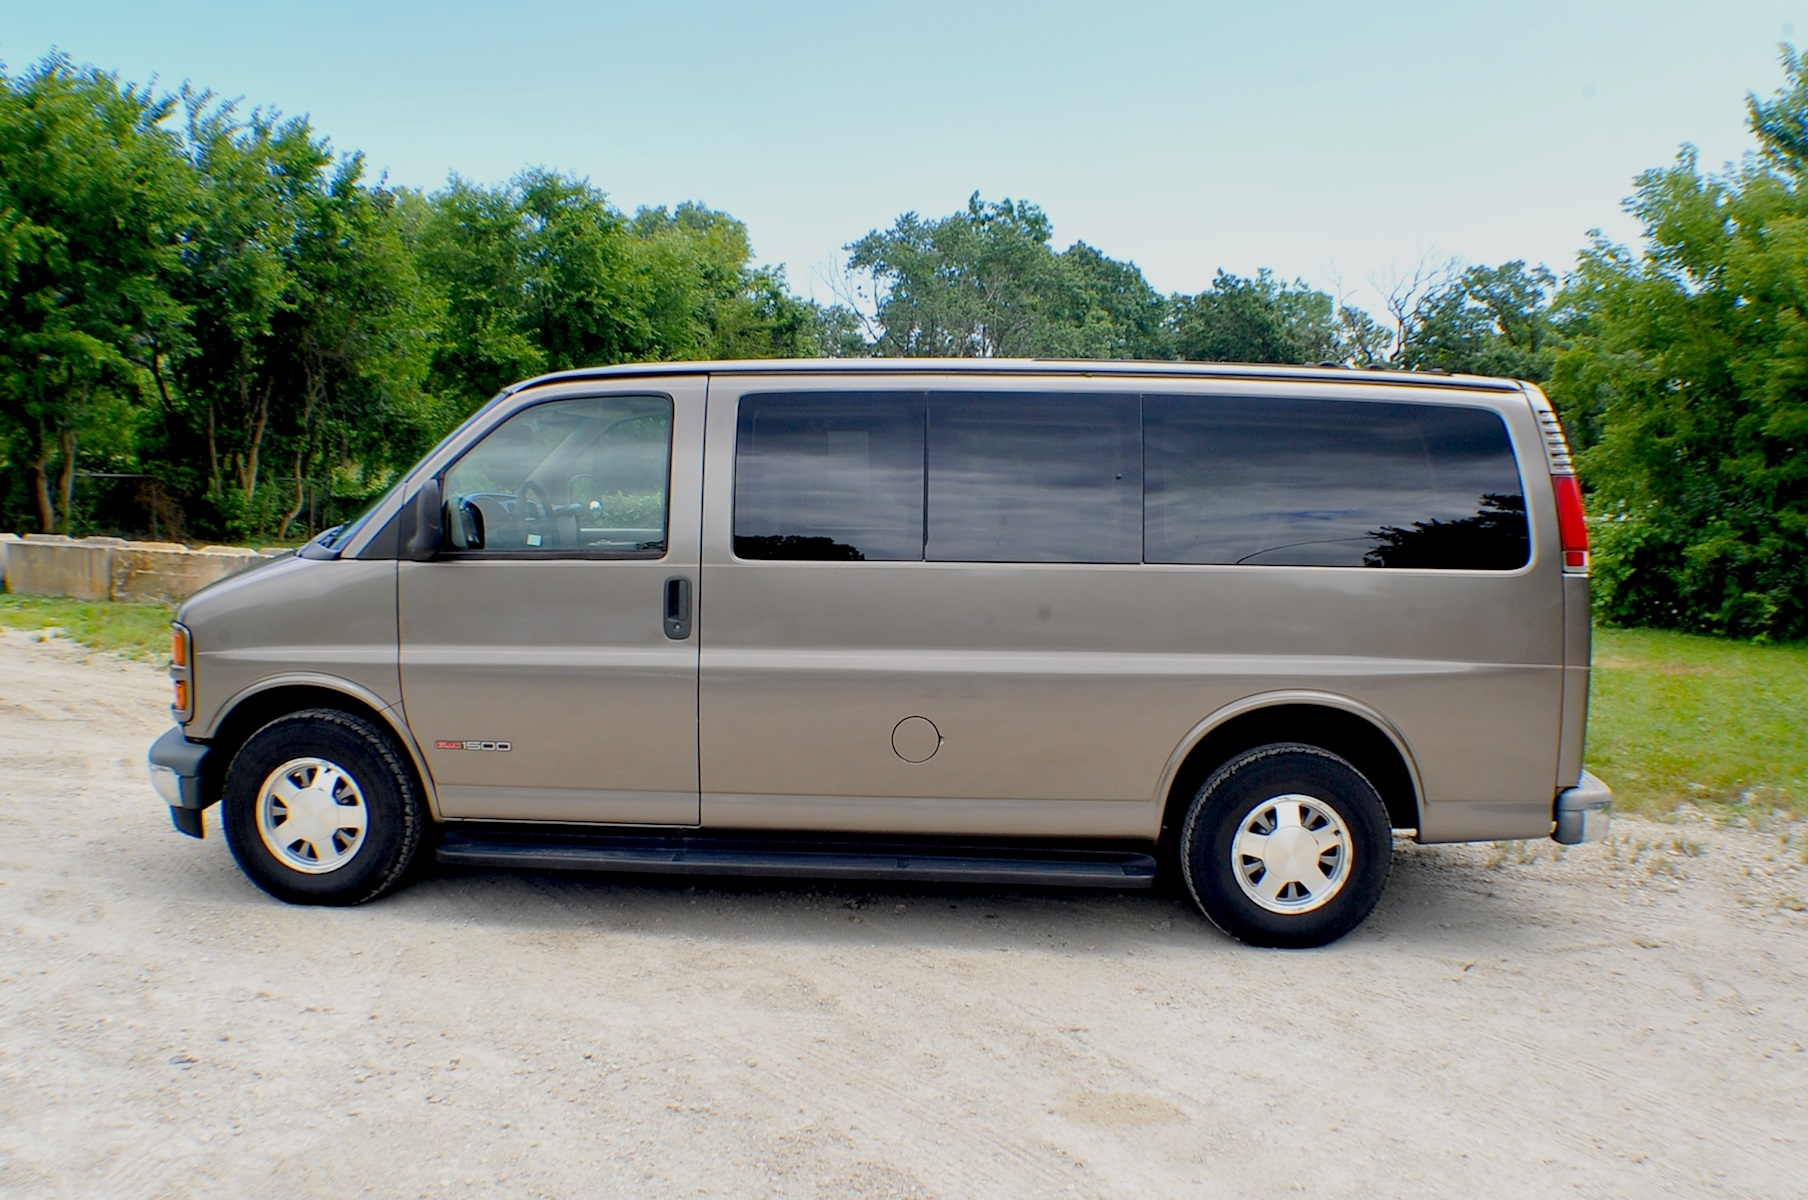 2000 GMC Savana Pewter 1500 Conversion Van Sale Bannockburn Barrington Beach Park